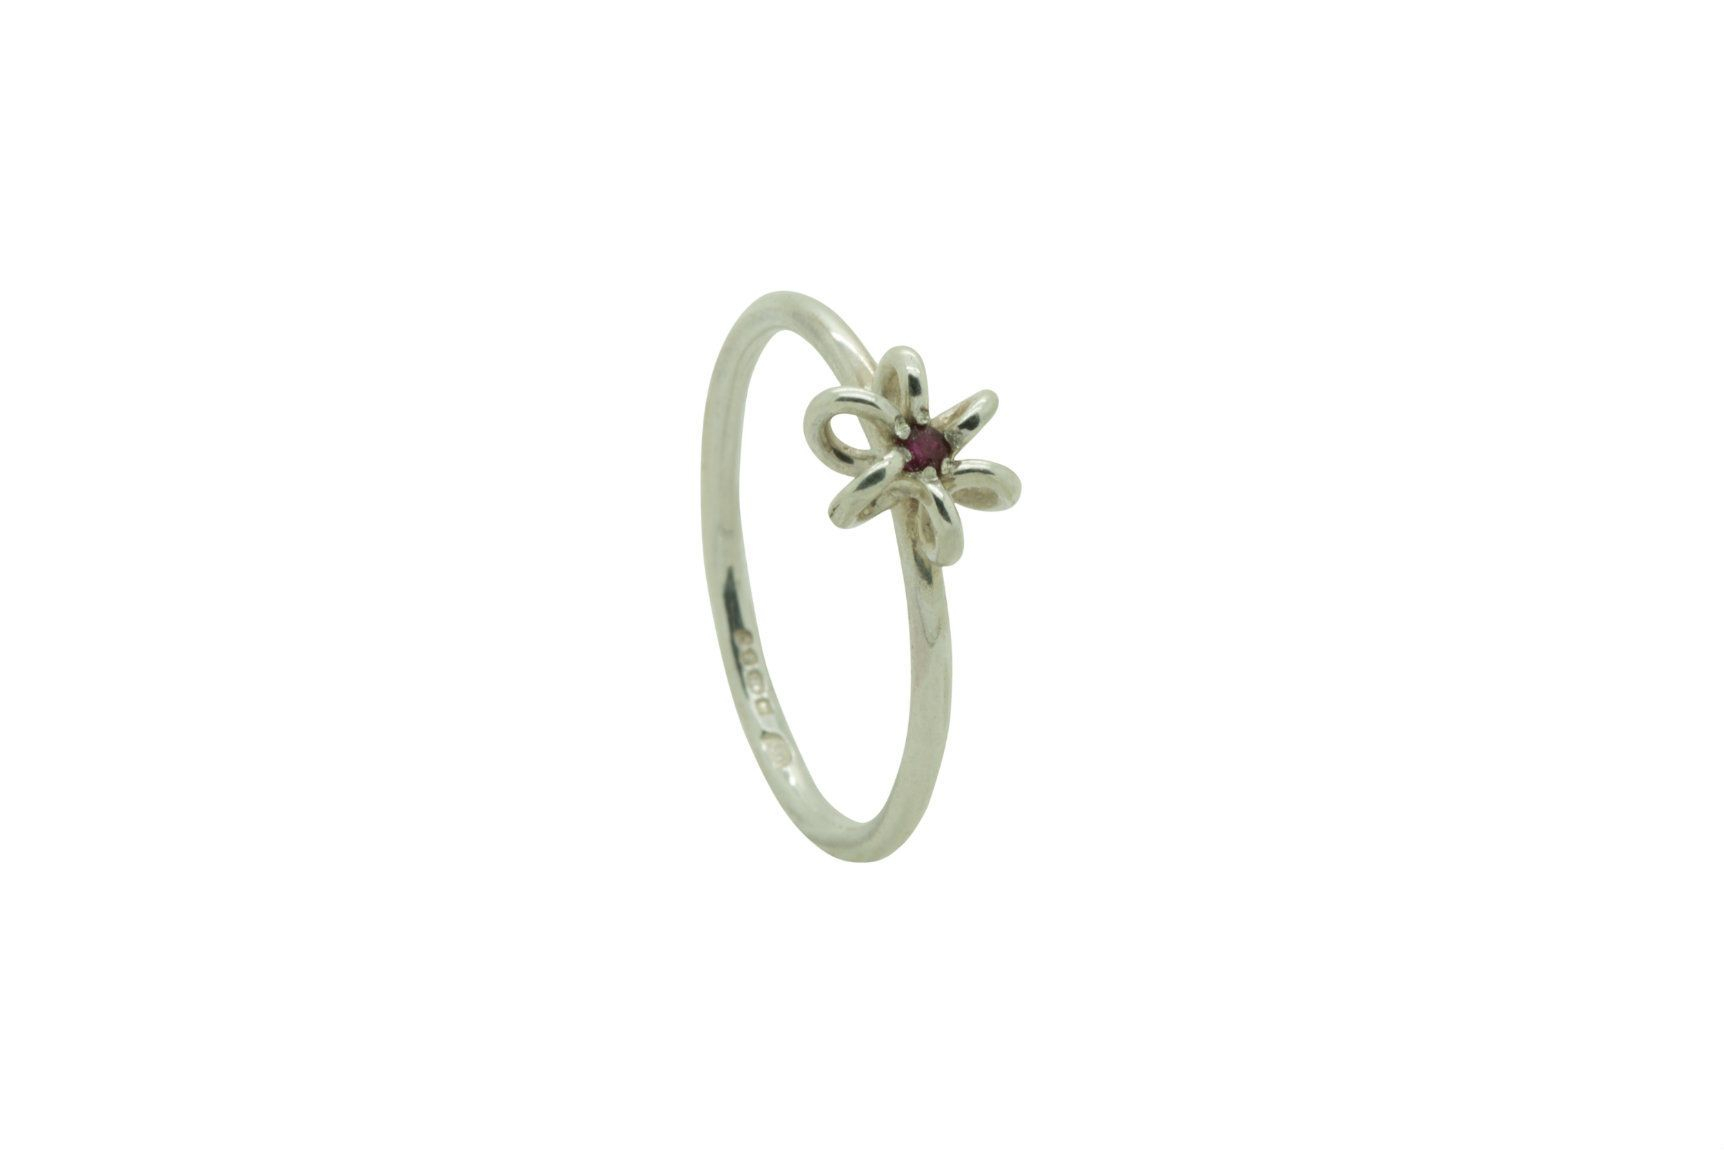 Silver Ruby Flower Ring With Regard To Most Recent Sparkling Daisy Flower Rings (Gallery 7 of 25)